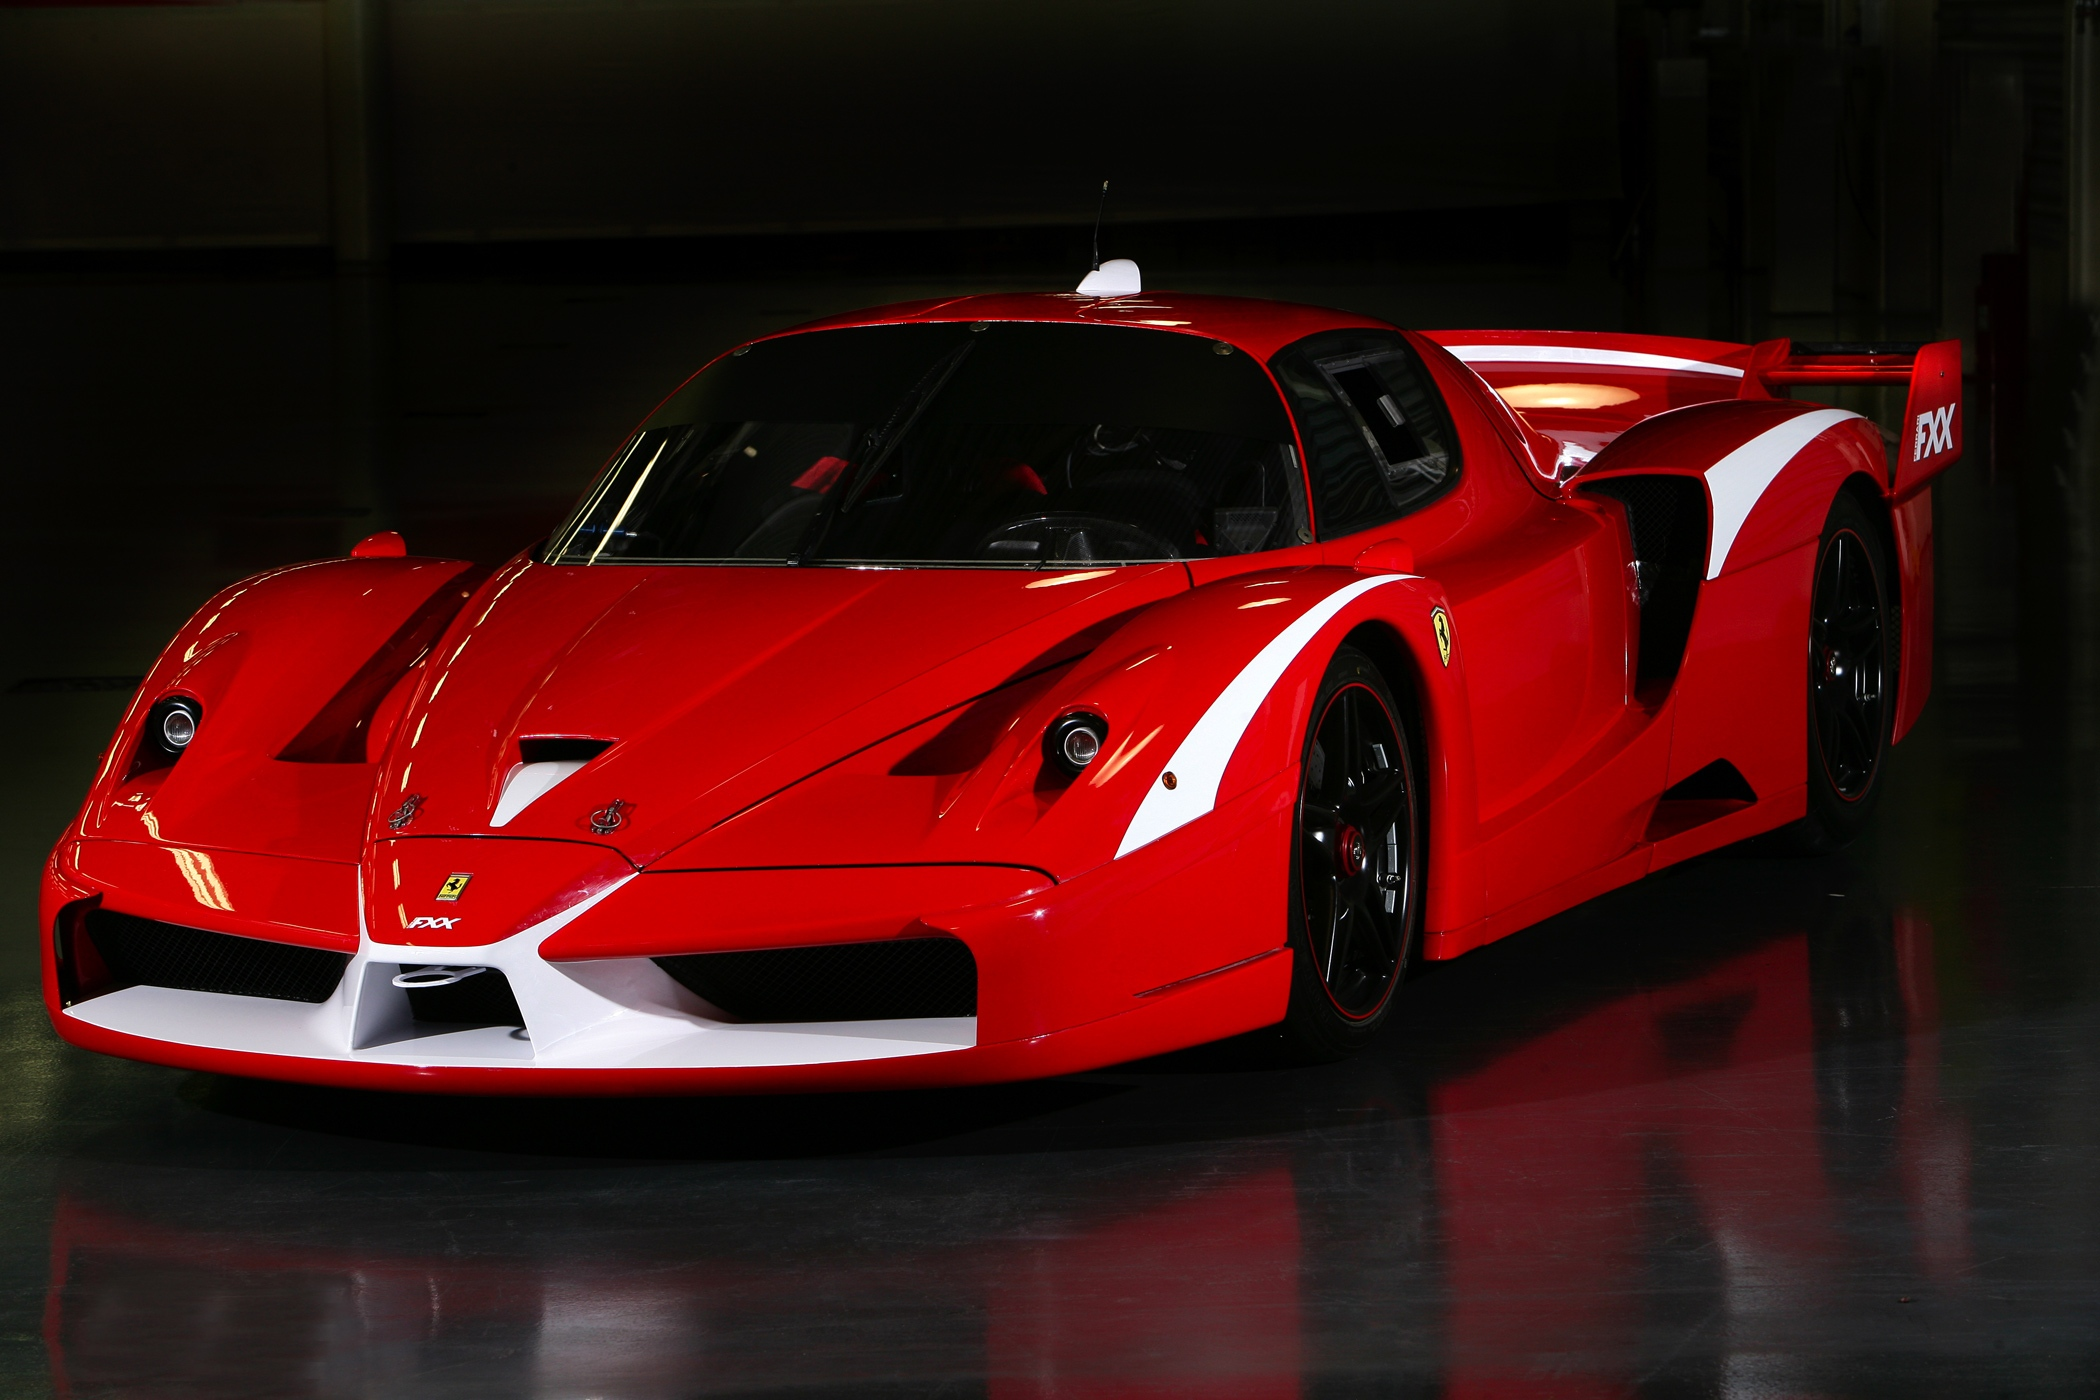 2005 Ferrari Fxx Evolution Price 2 190 000